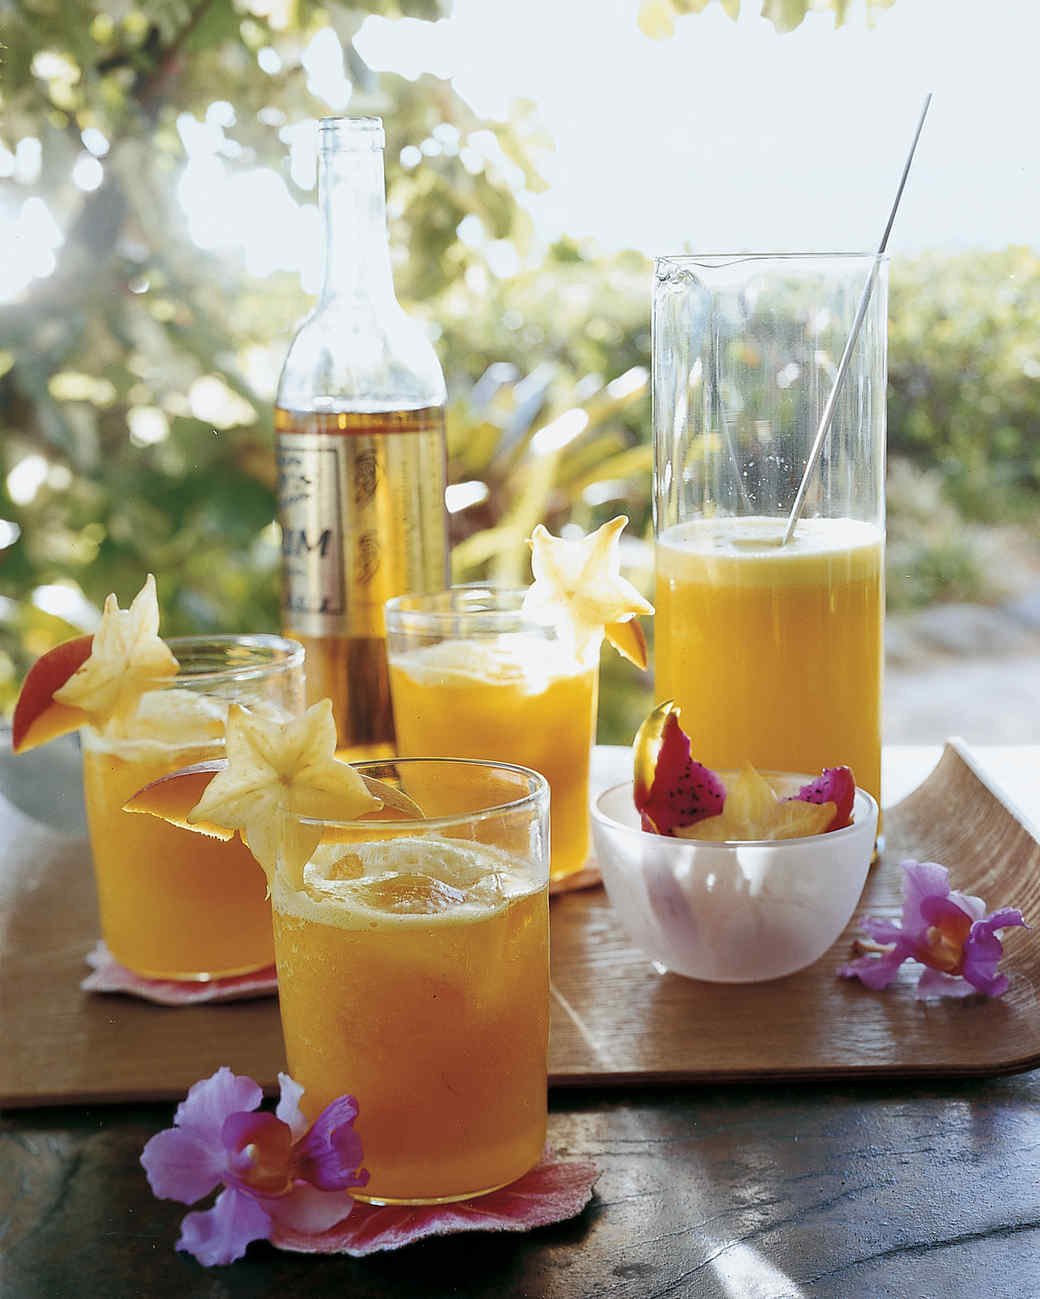 Pineapple and Mango Rum Cocktails Recipe | Martha Stewart